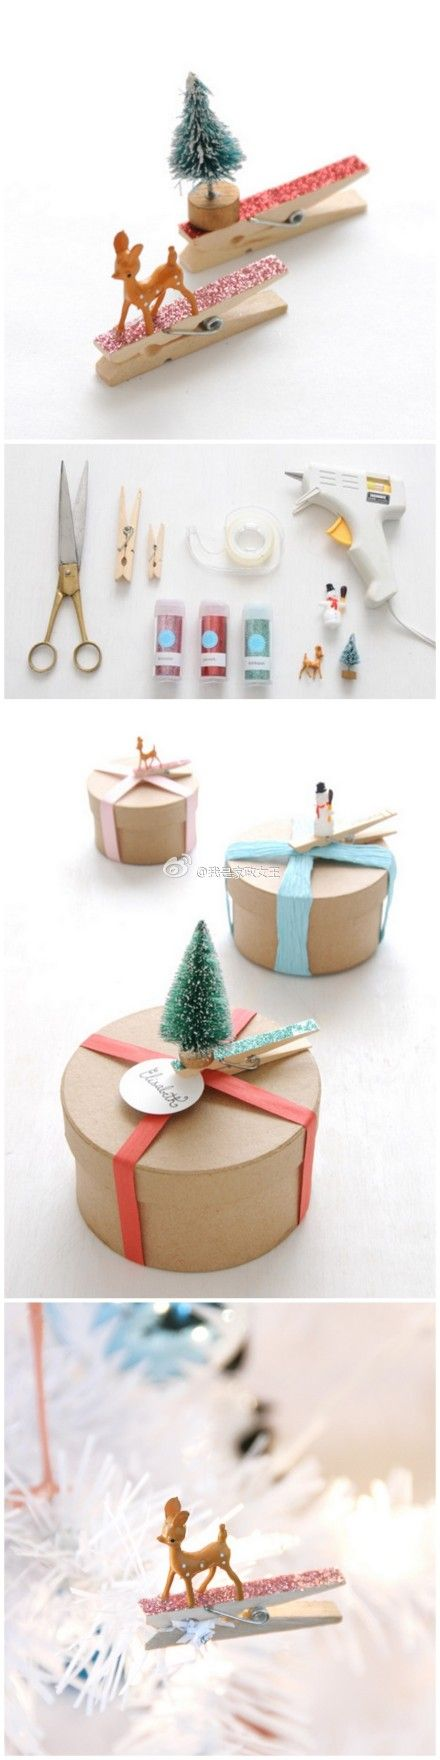 All for the Boys - All for the Boys - Time to get Crafty: Ornaments